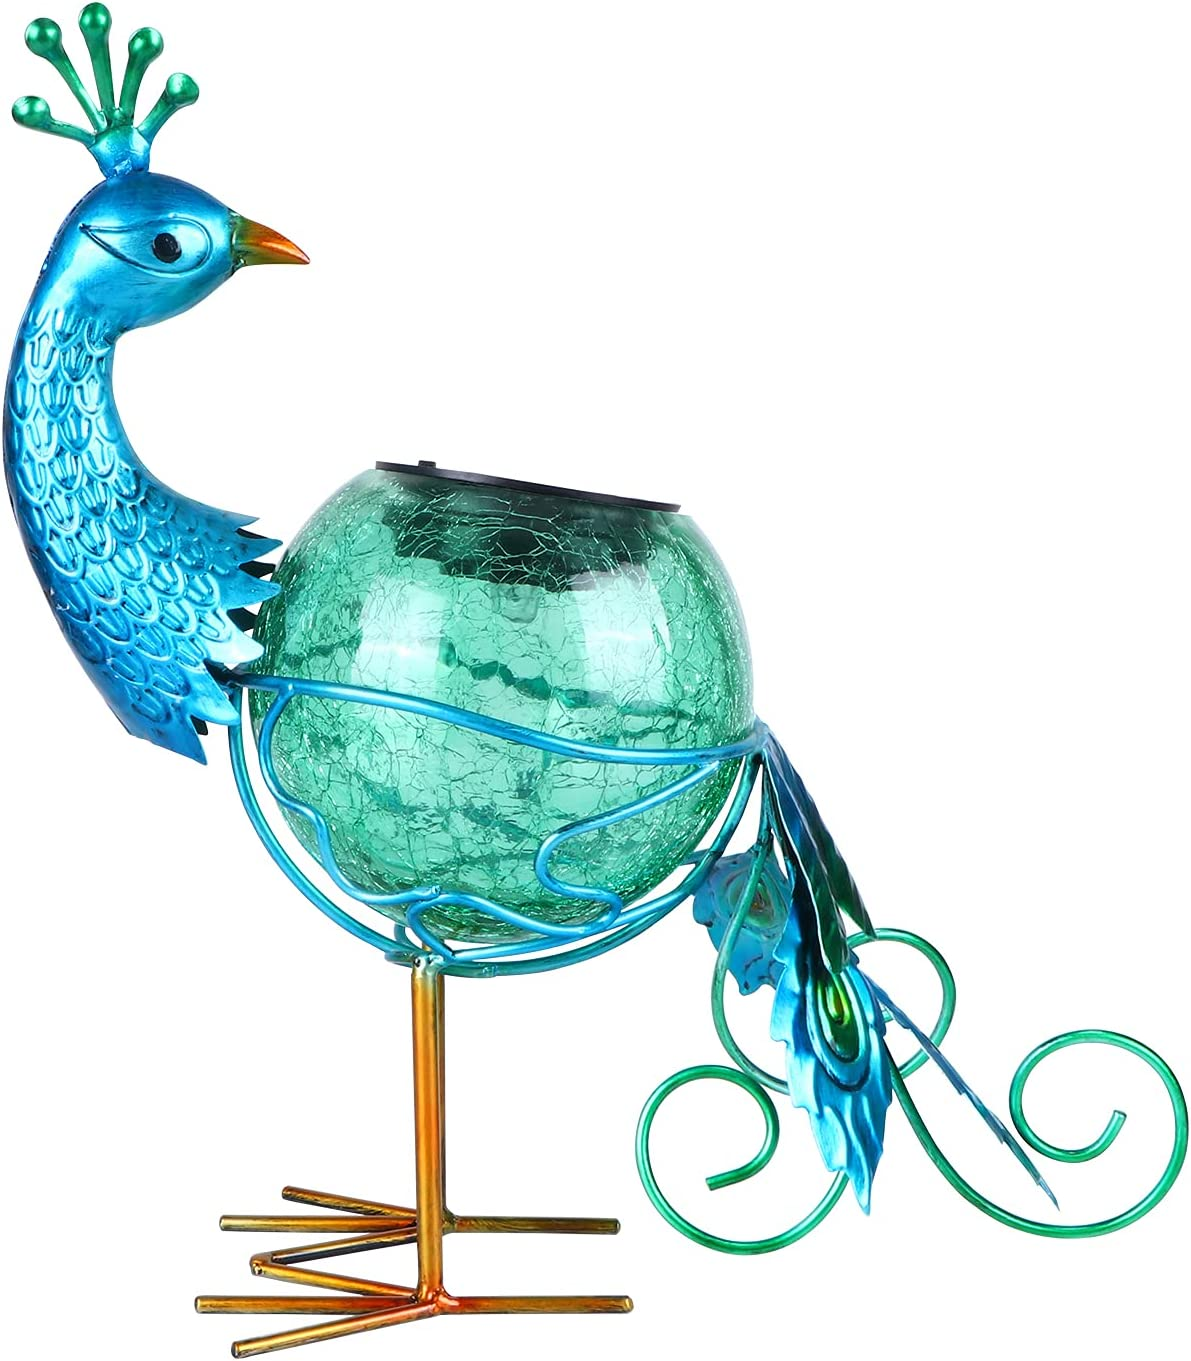 Solar Powered Animal Lights Outdoor Decor Peacock Figurine with LED Lights Waterproof Peacock Statue Light for Pathway Patio Backyard Decor Lawn Ornaments